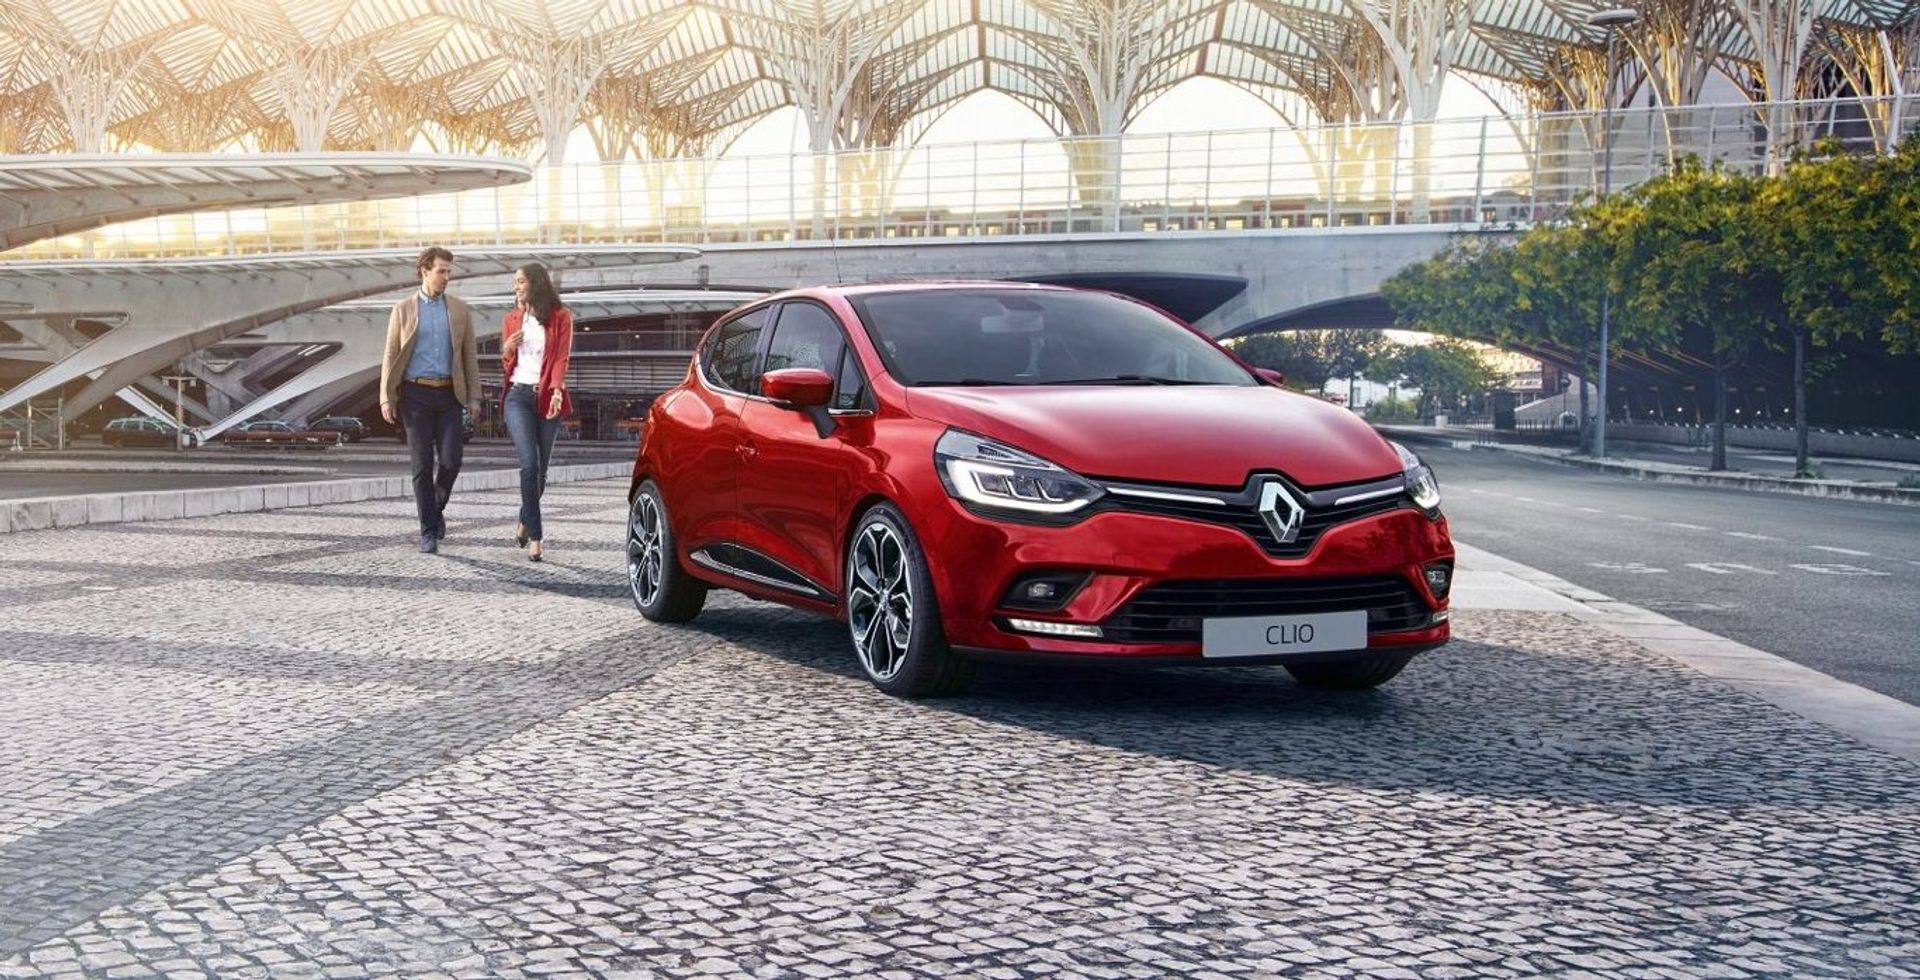 Renault Clio Sport Used Cars For Sale Autotrader Uk